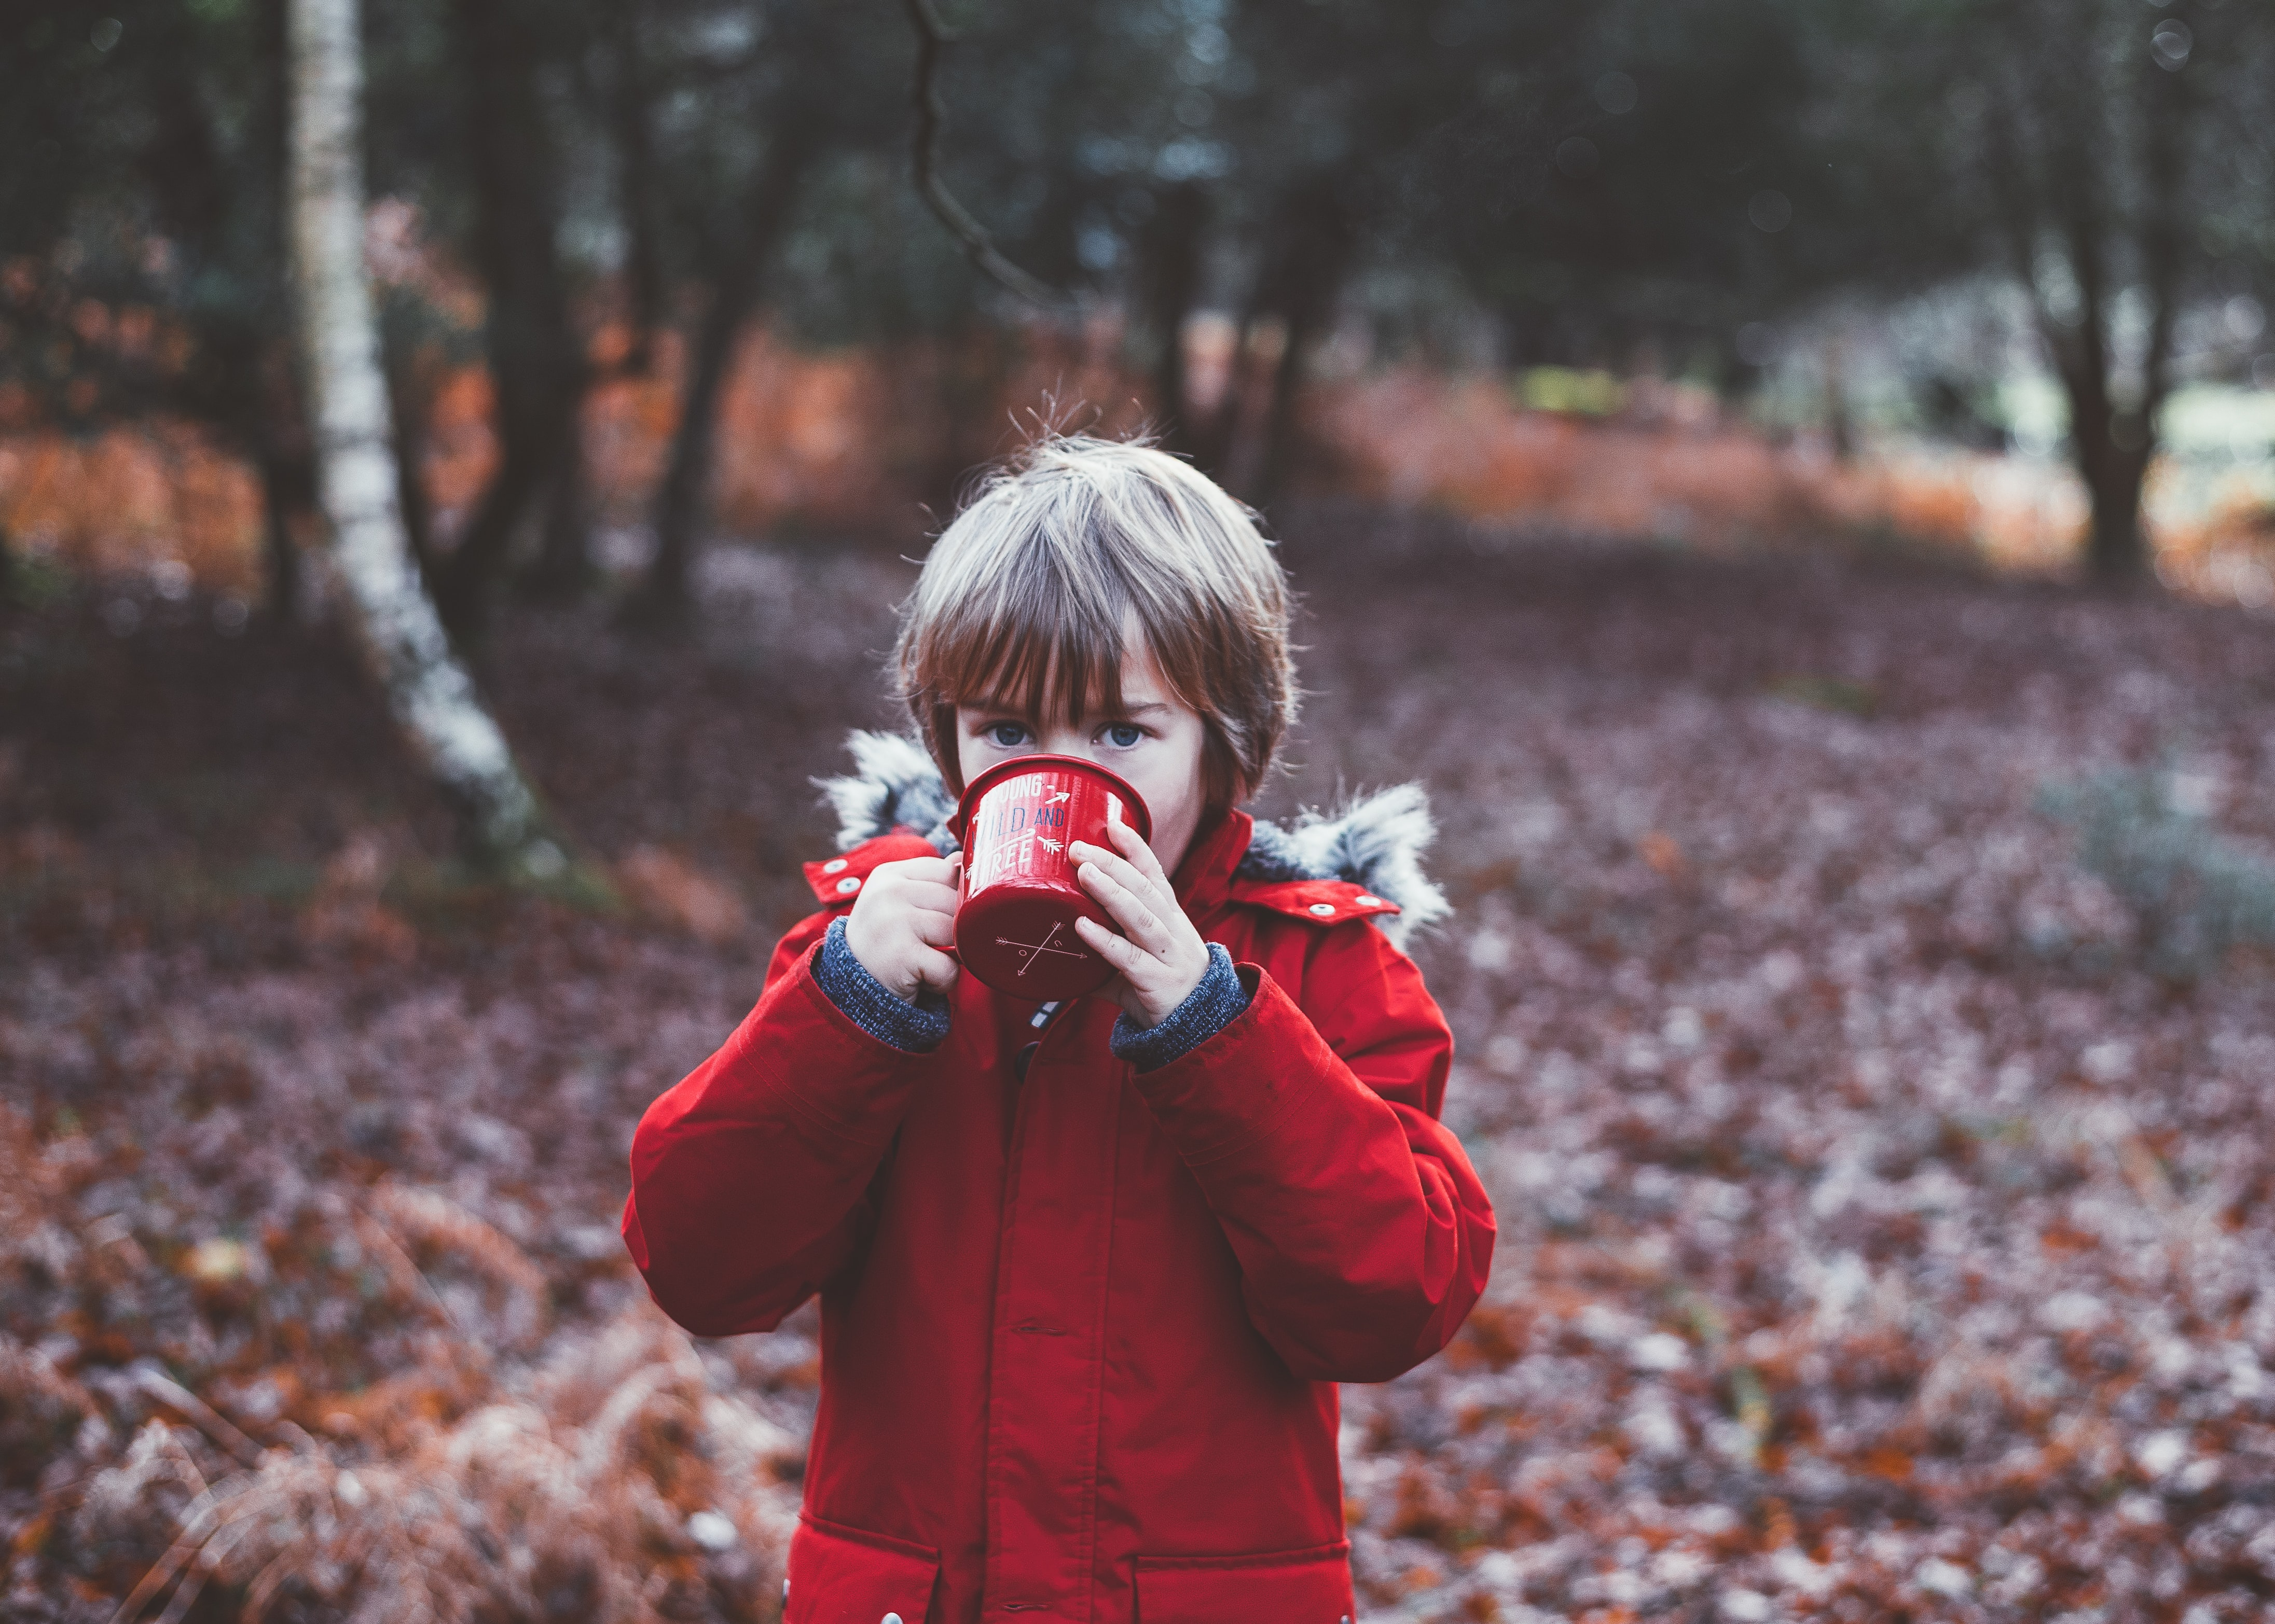 A small boy drinking out of an enamel cup in an autumn forest